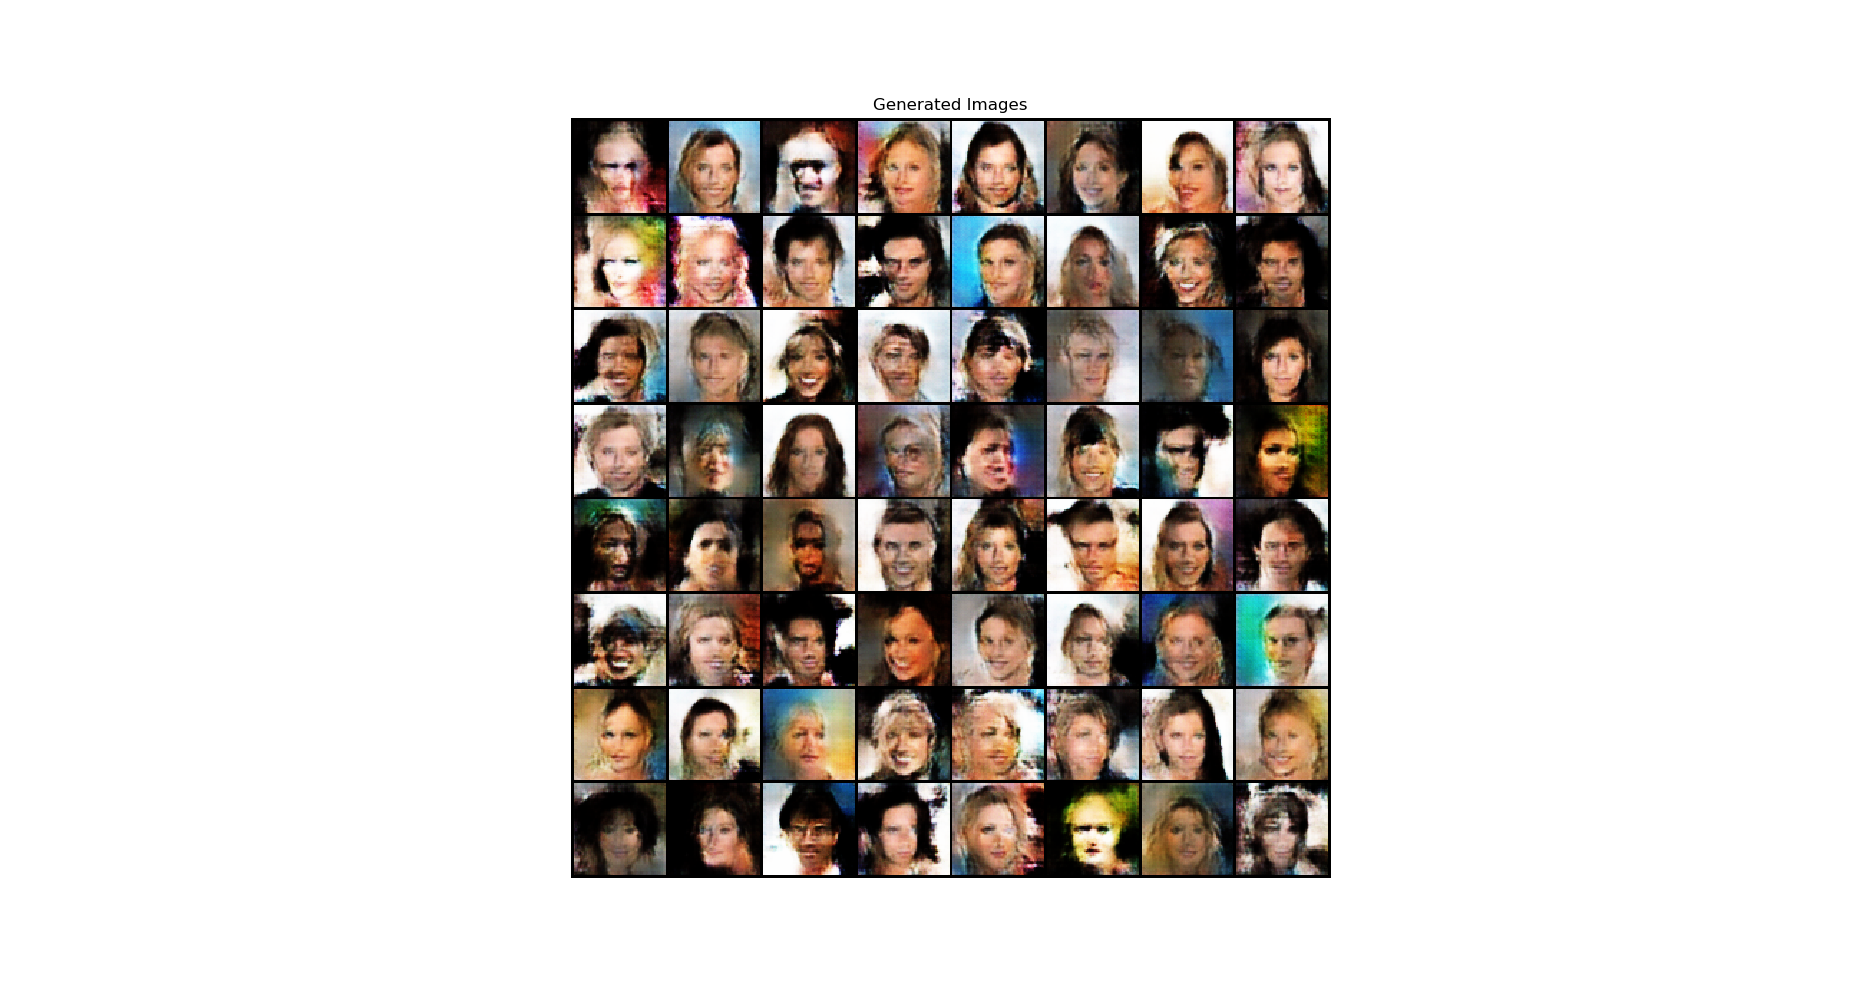 Generated Images after 1st Epoch